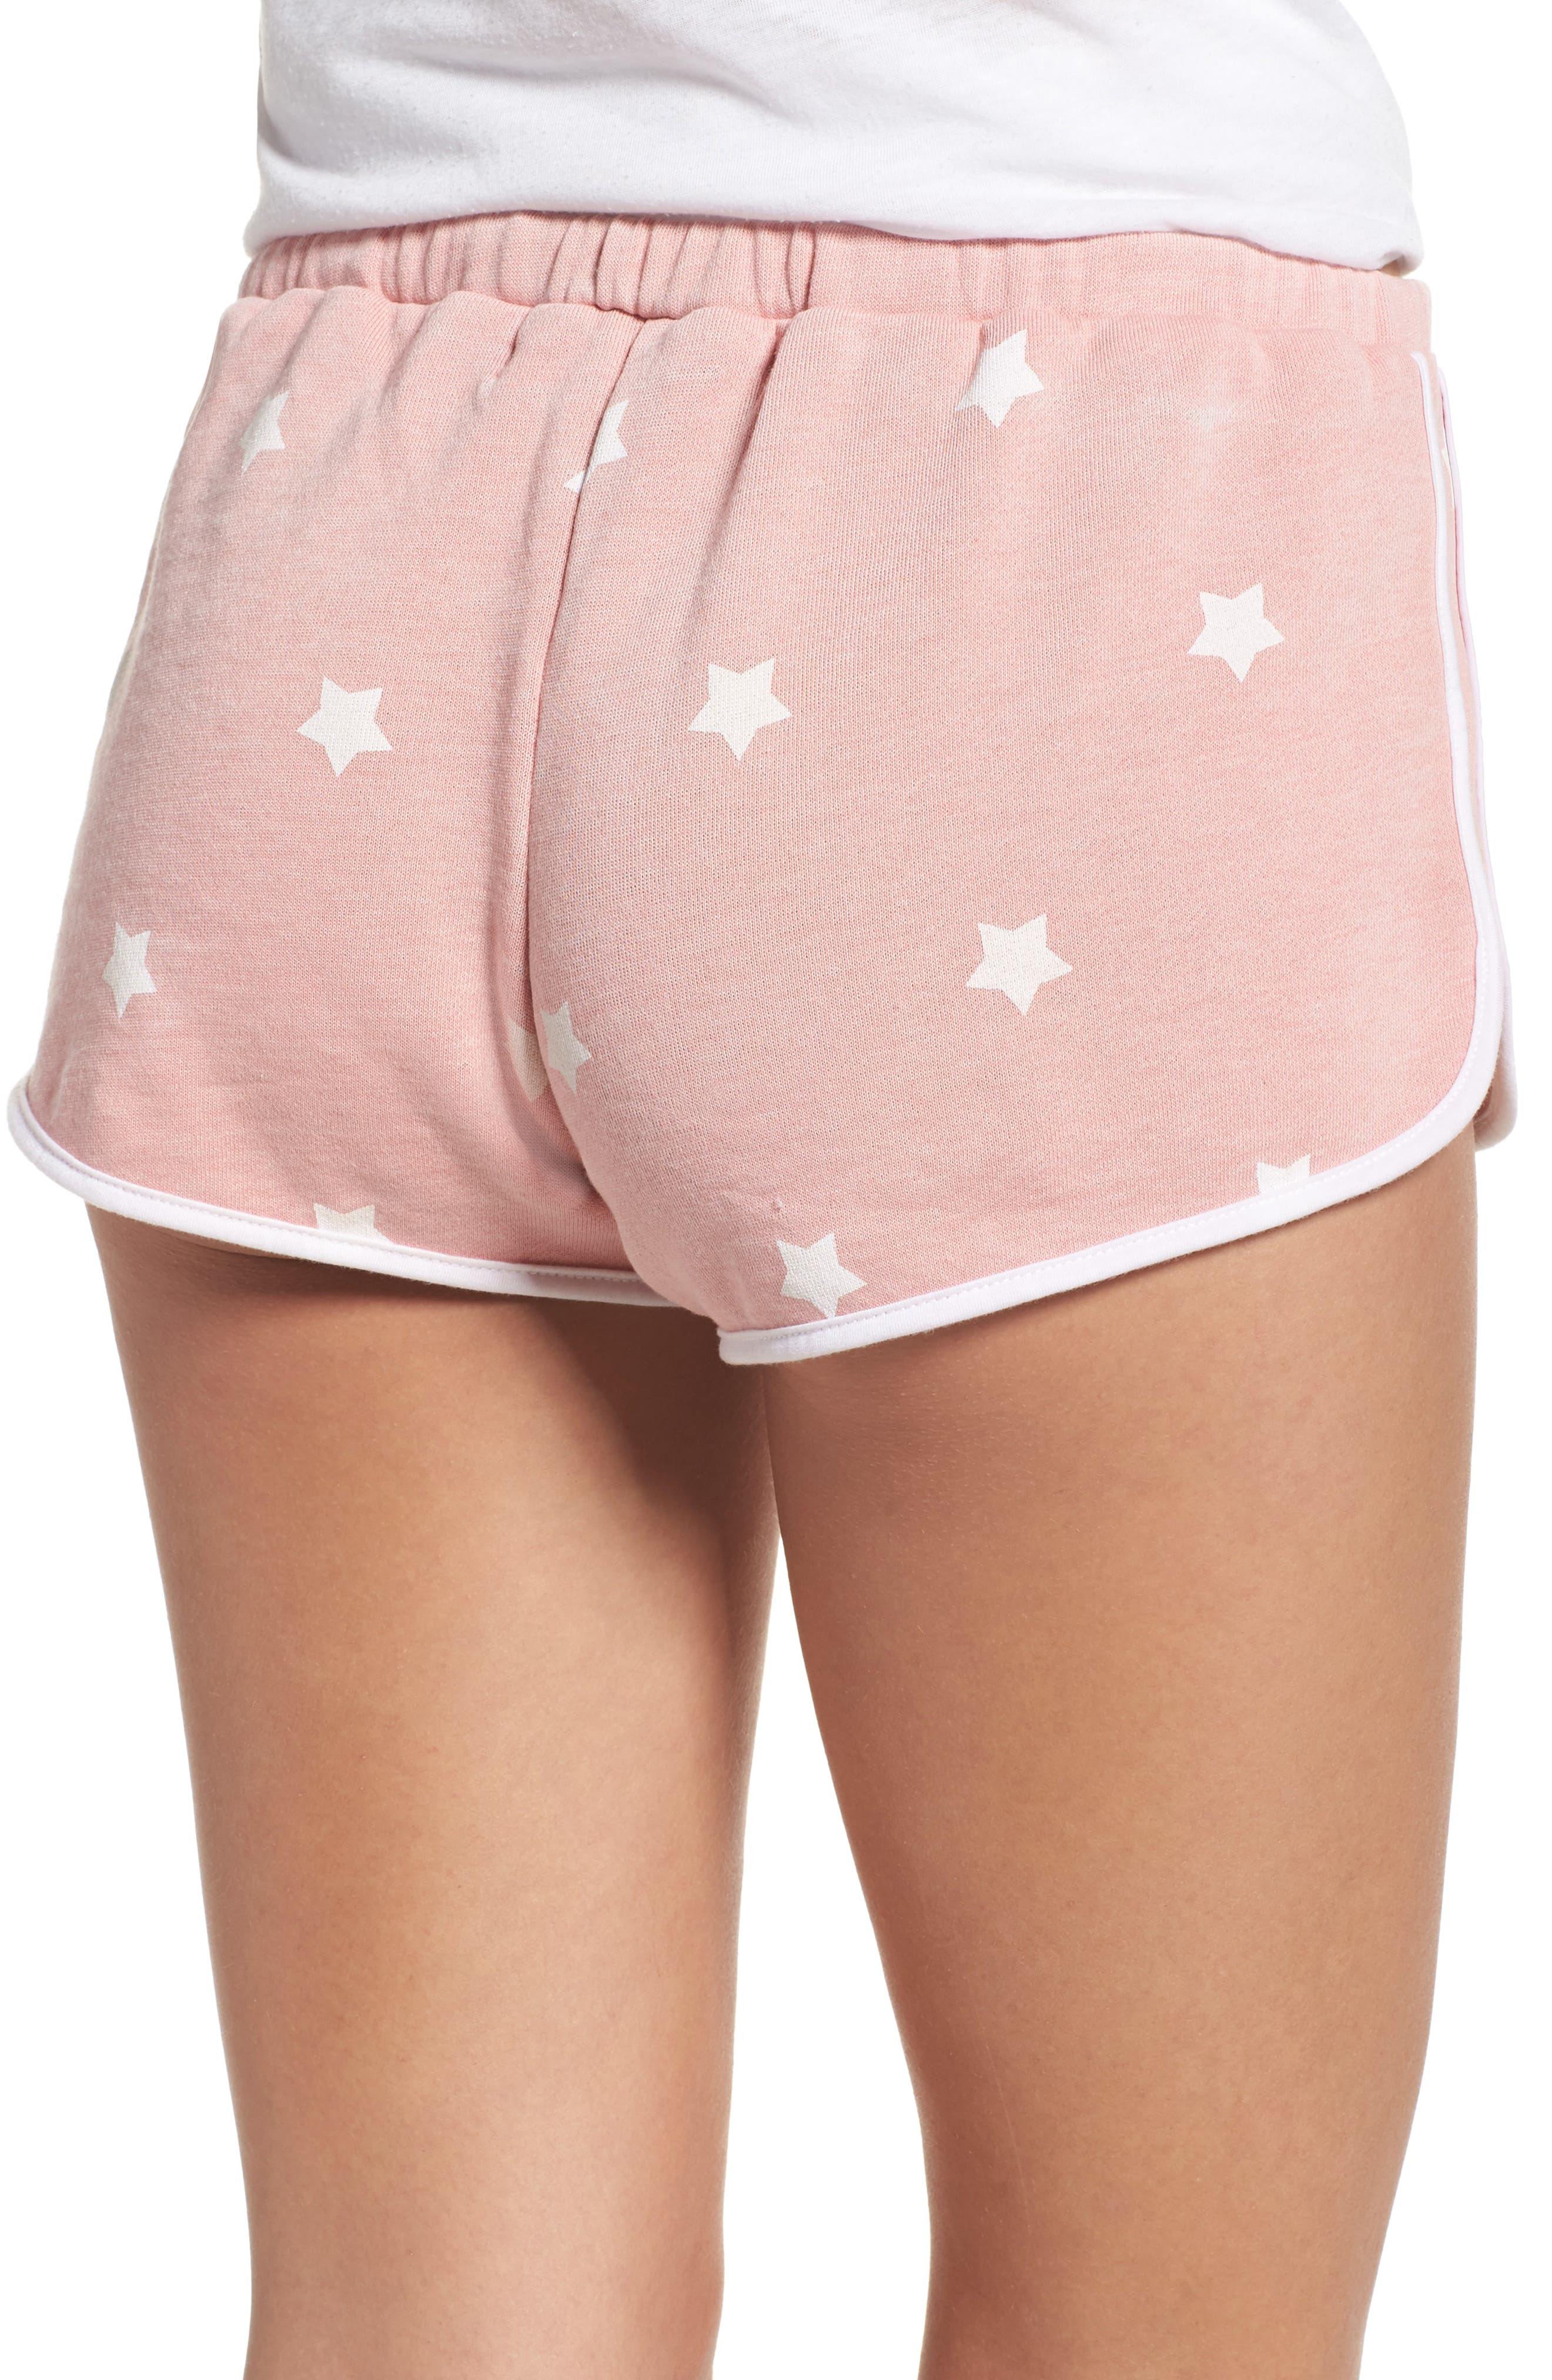 Cozy Crew Lounge Shorts,                             Alternate thumbnail 2, color,                             Champagne Star